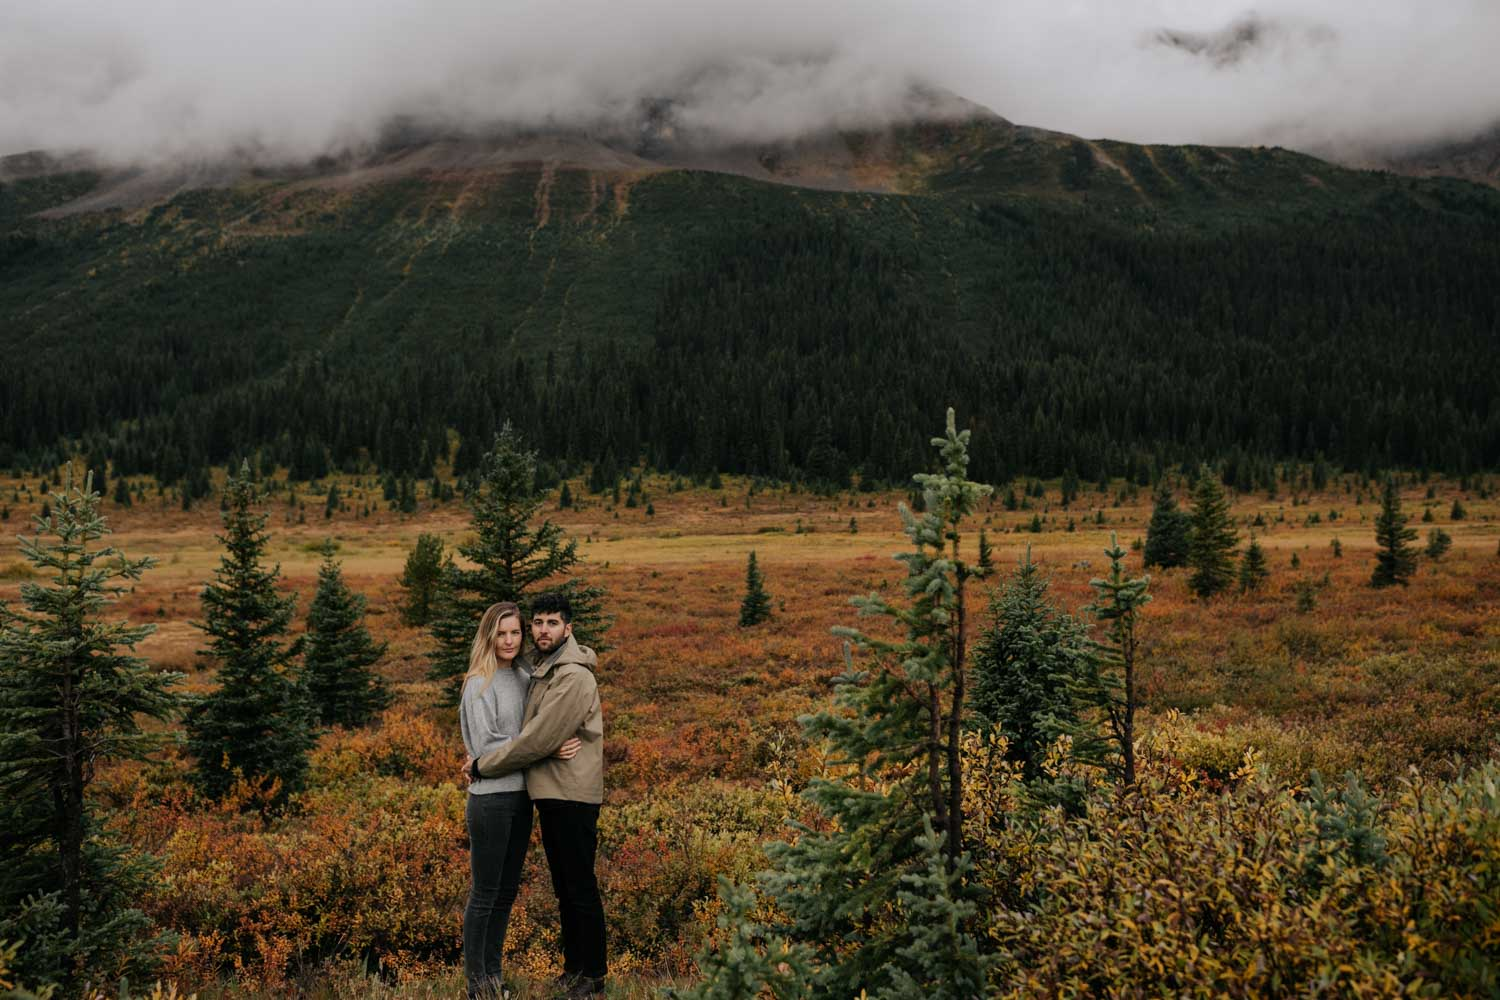 Wedding portrait session on the Icefield Parkway between Banff and Jasper, with Autumn tones in the field beyond and beautiful mountains surrounding the couple